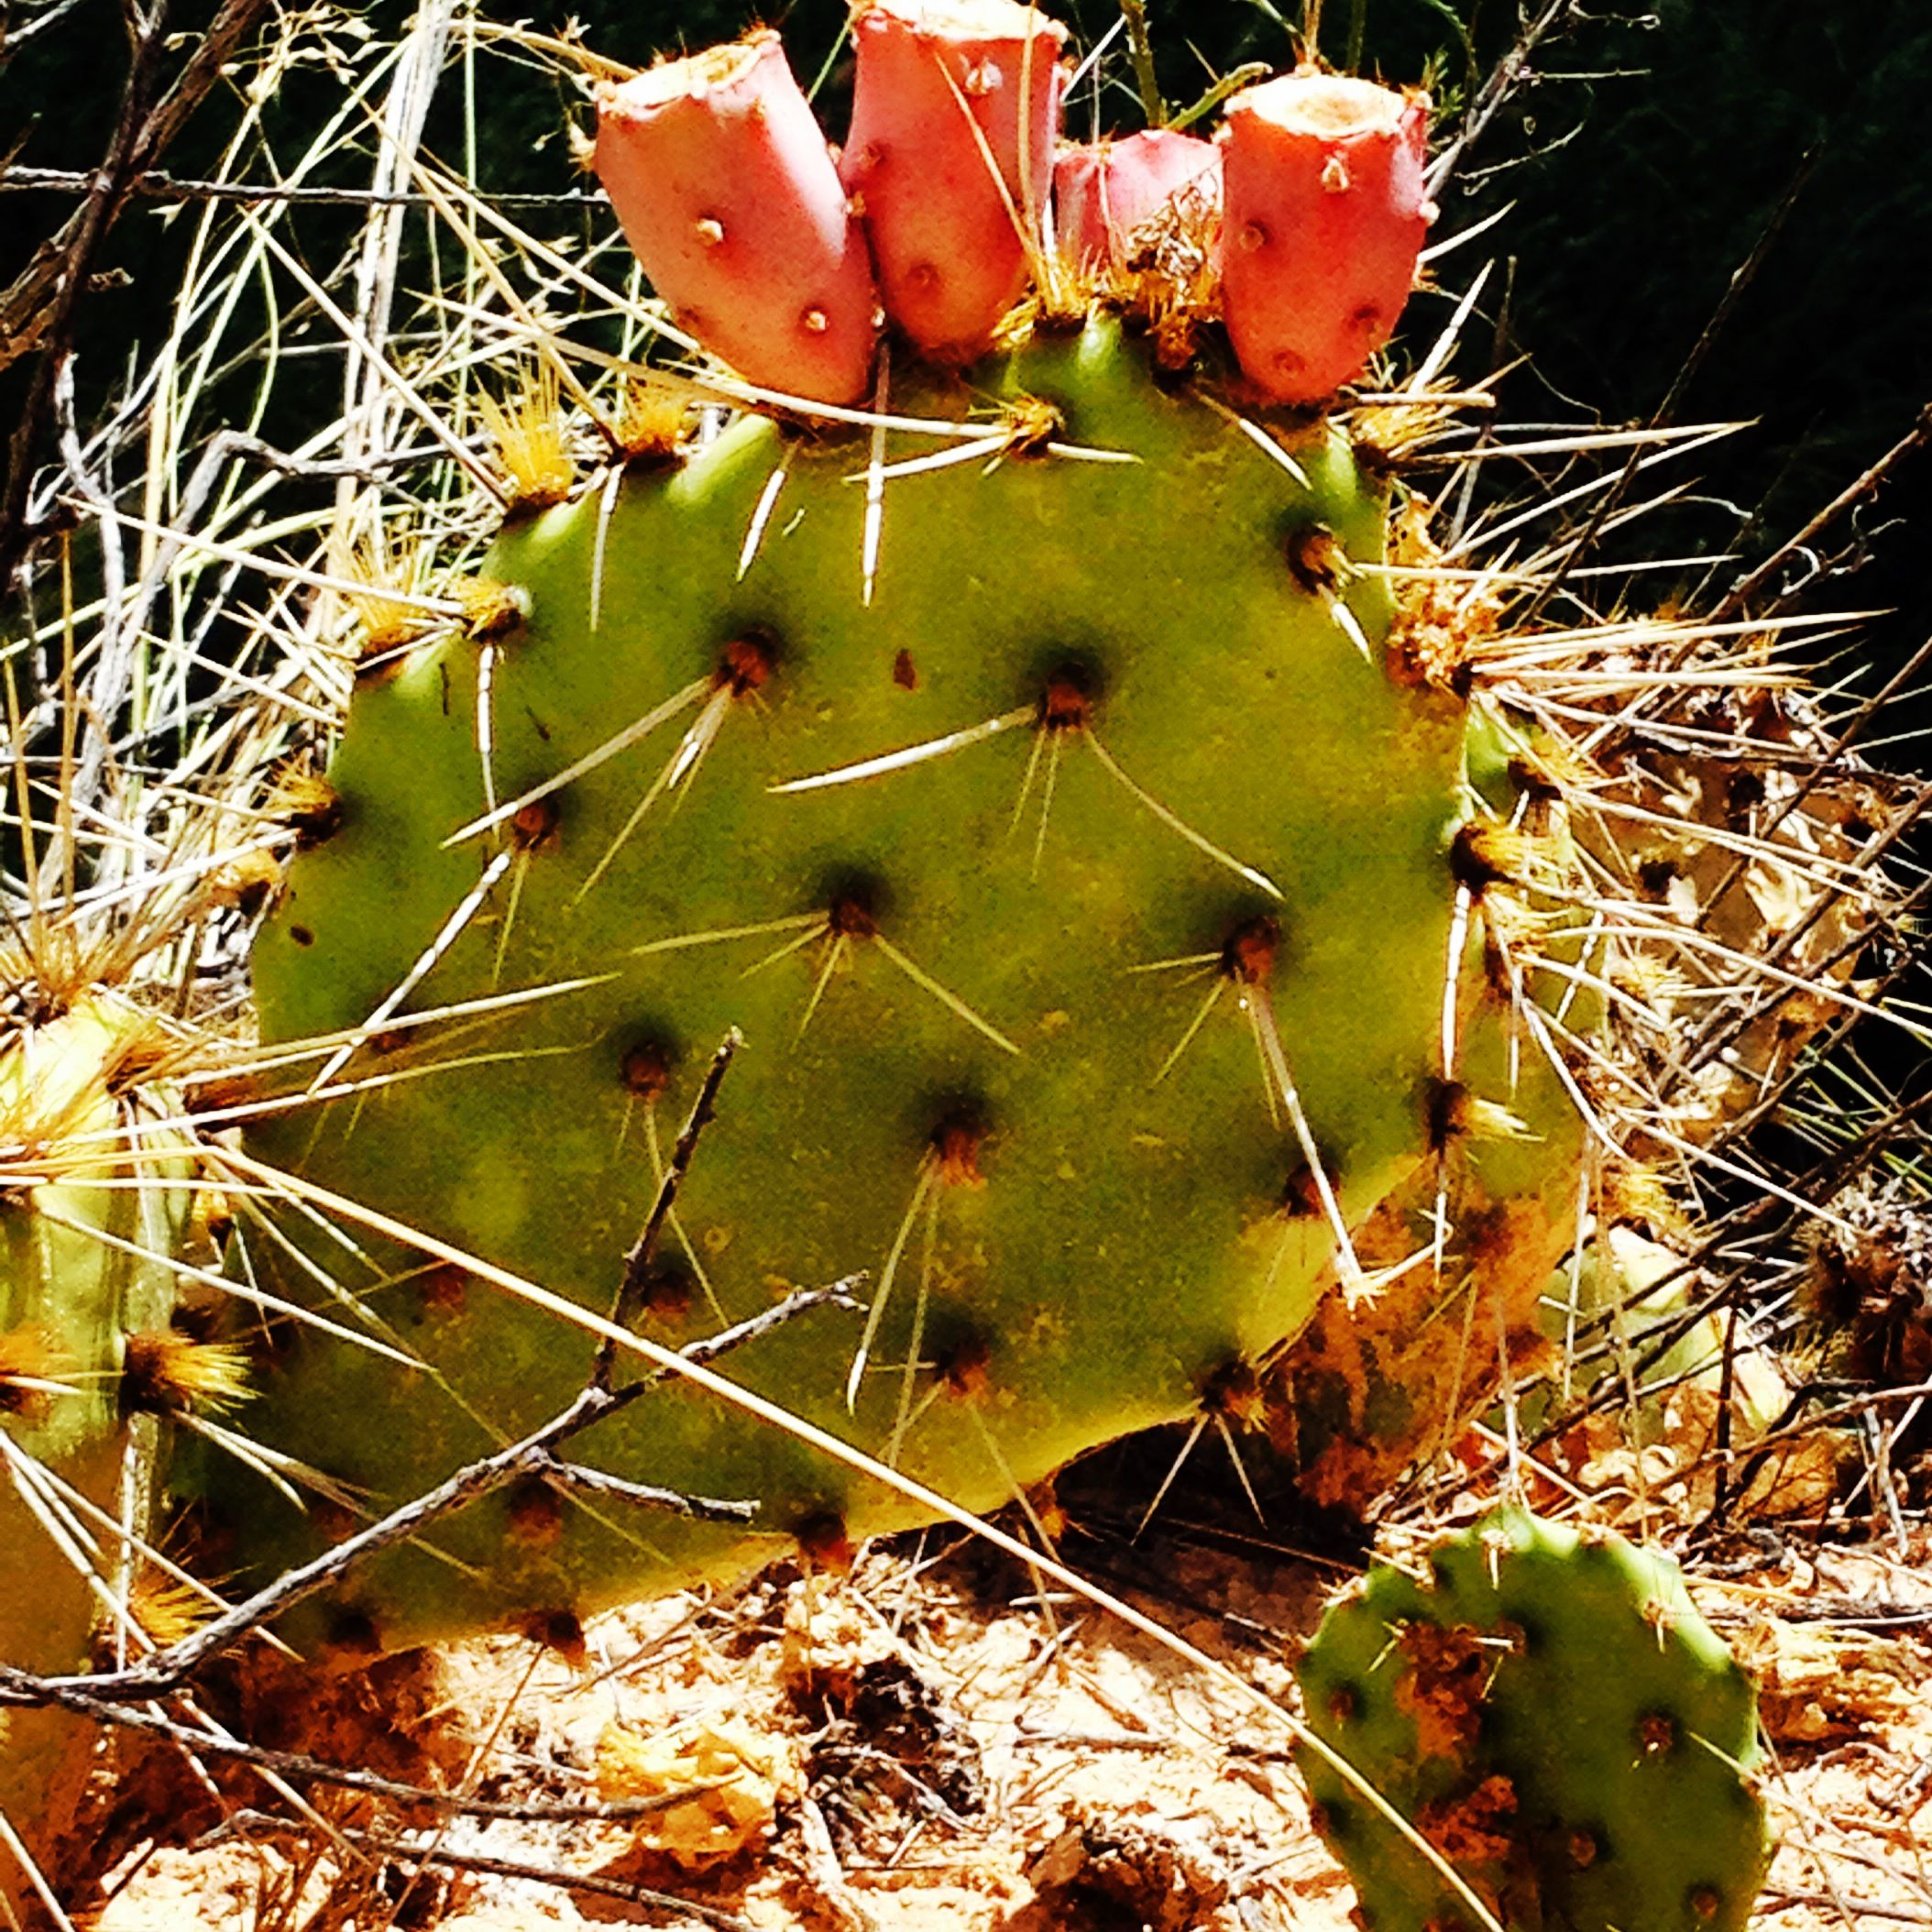 The desert colors are intense, this gorgeous cactus was preening on a hike to Calf Creek Falls in Escalante, Utah.